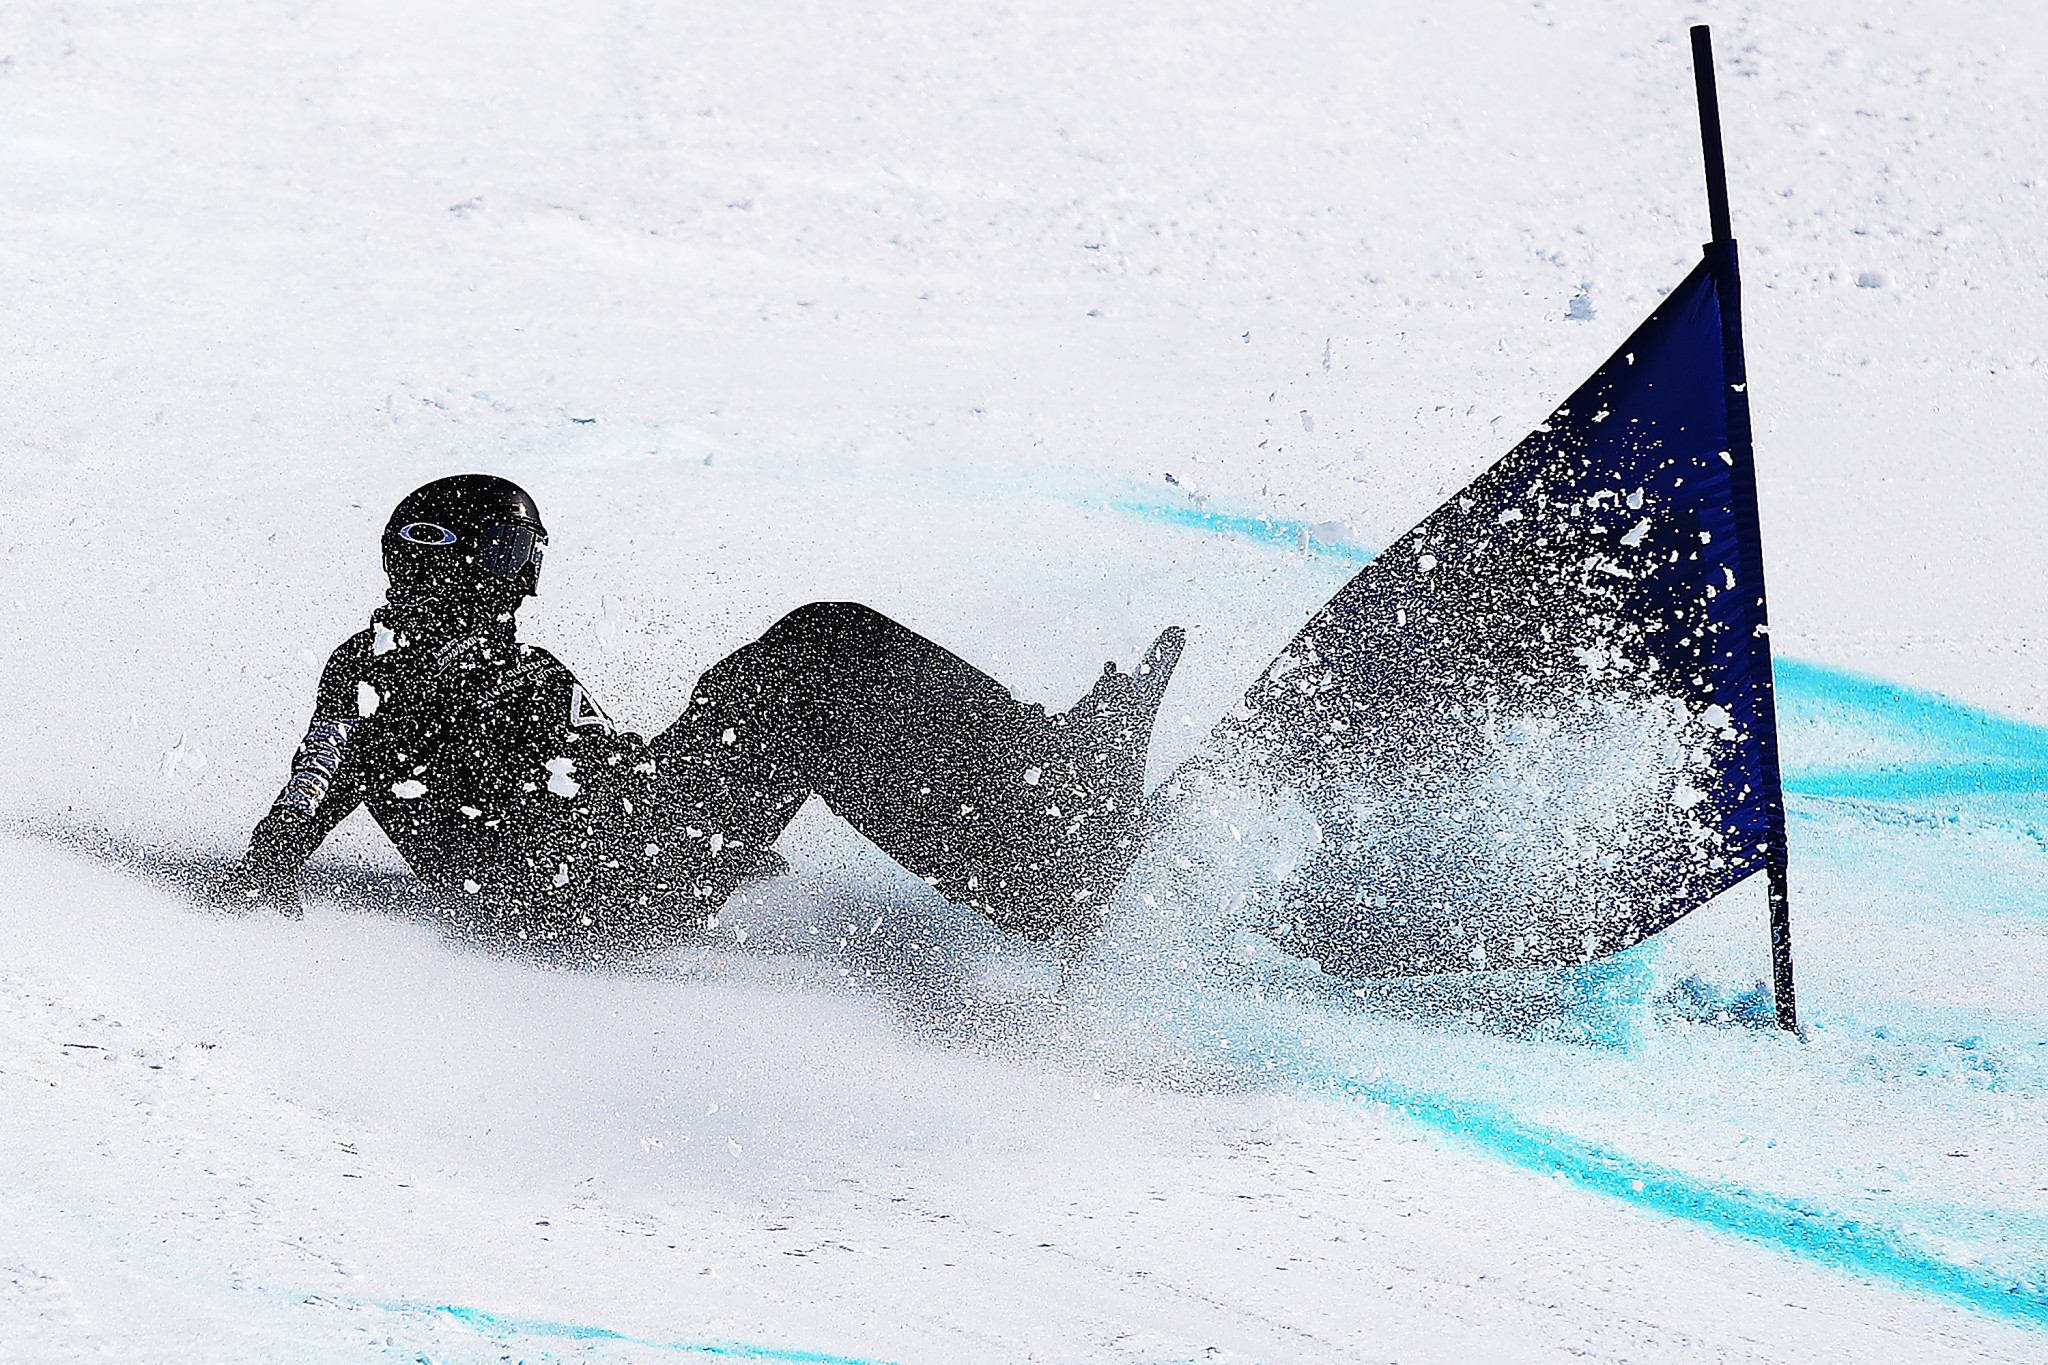 Joany Badenhorst also suffered an injury to her left knee at Sochi 2014 ©Getty Images